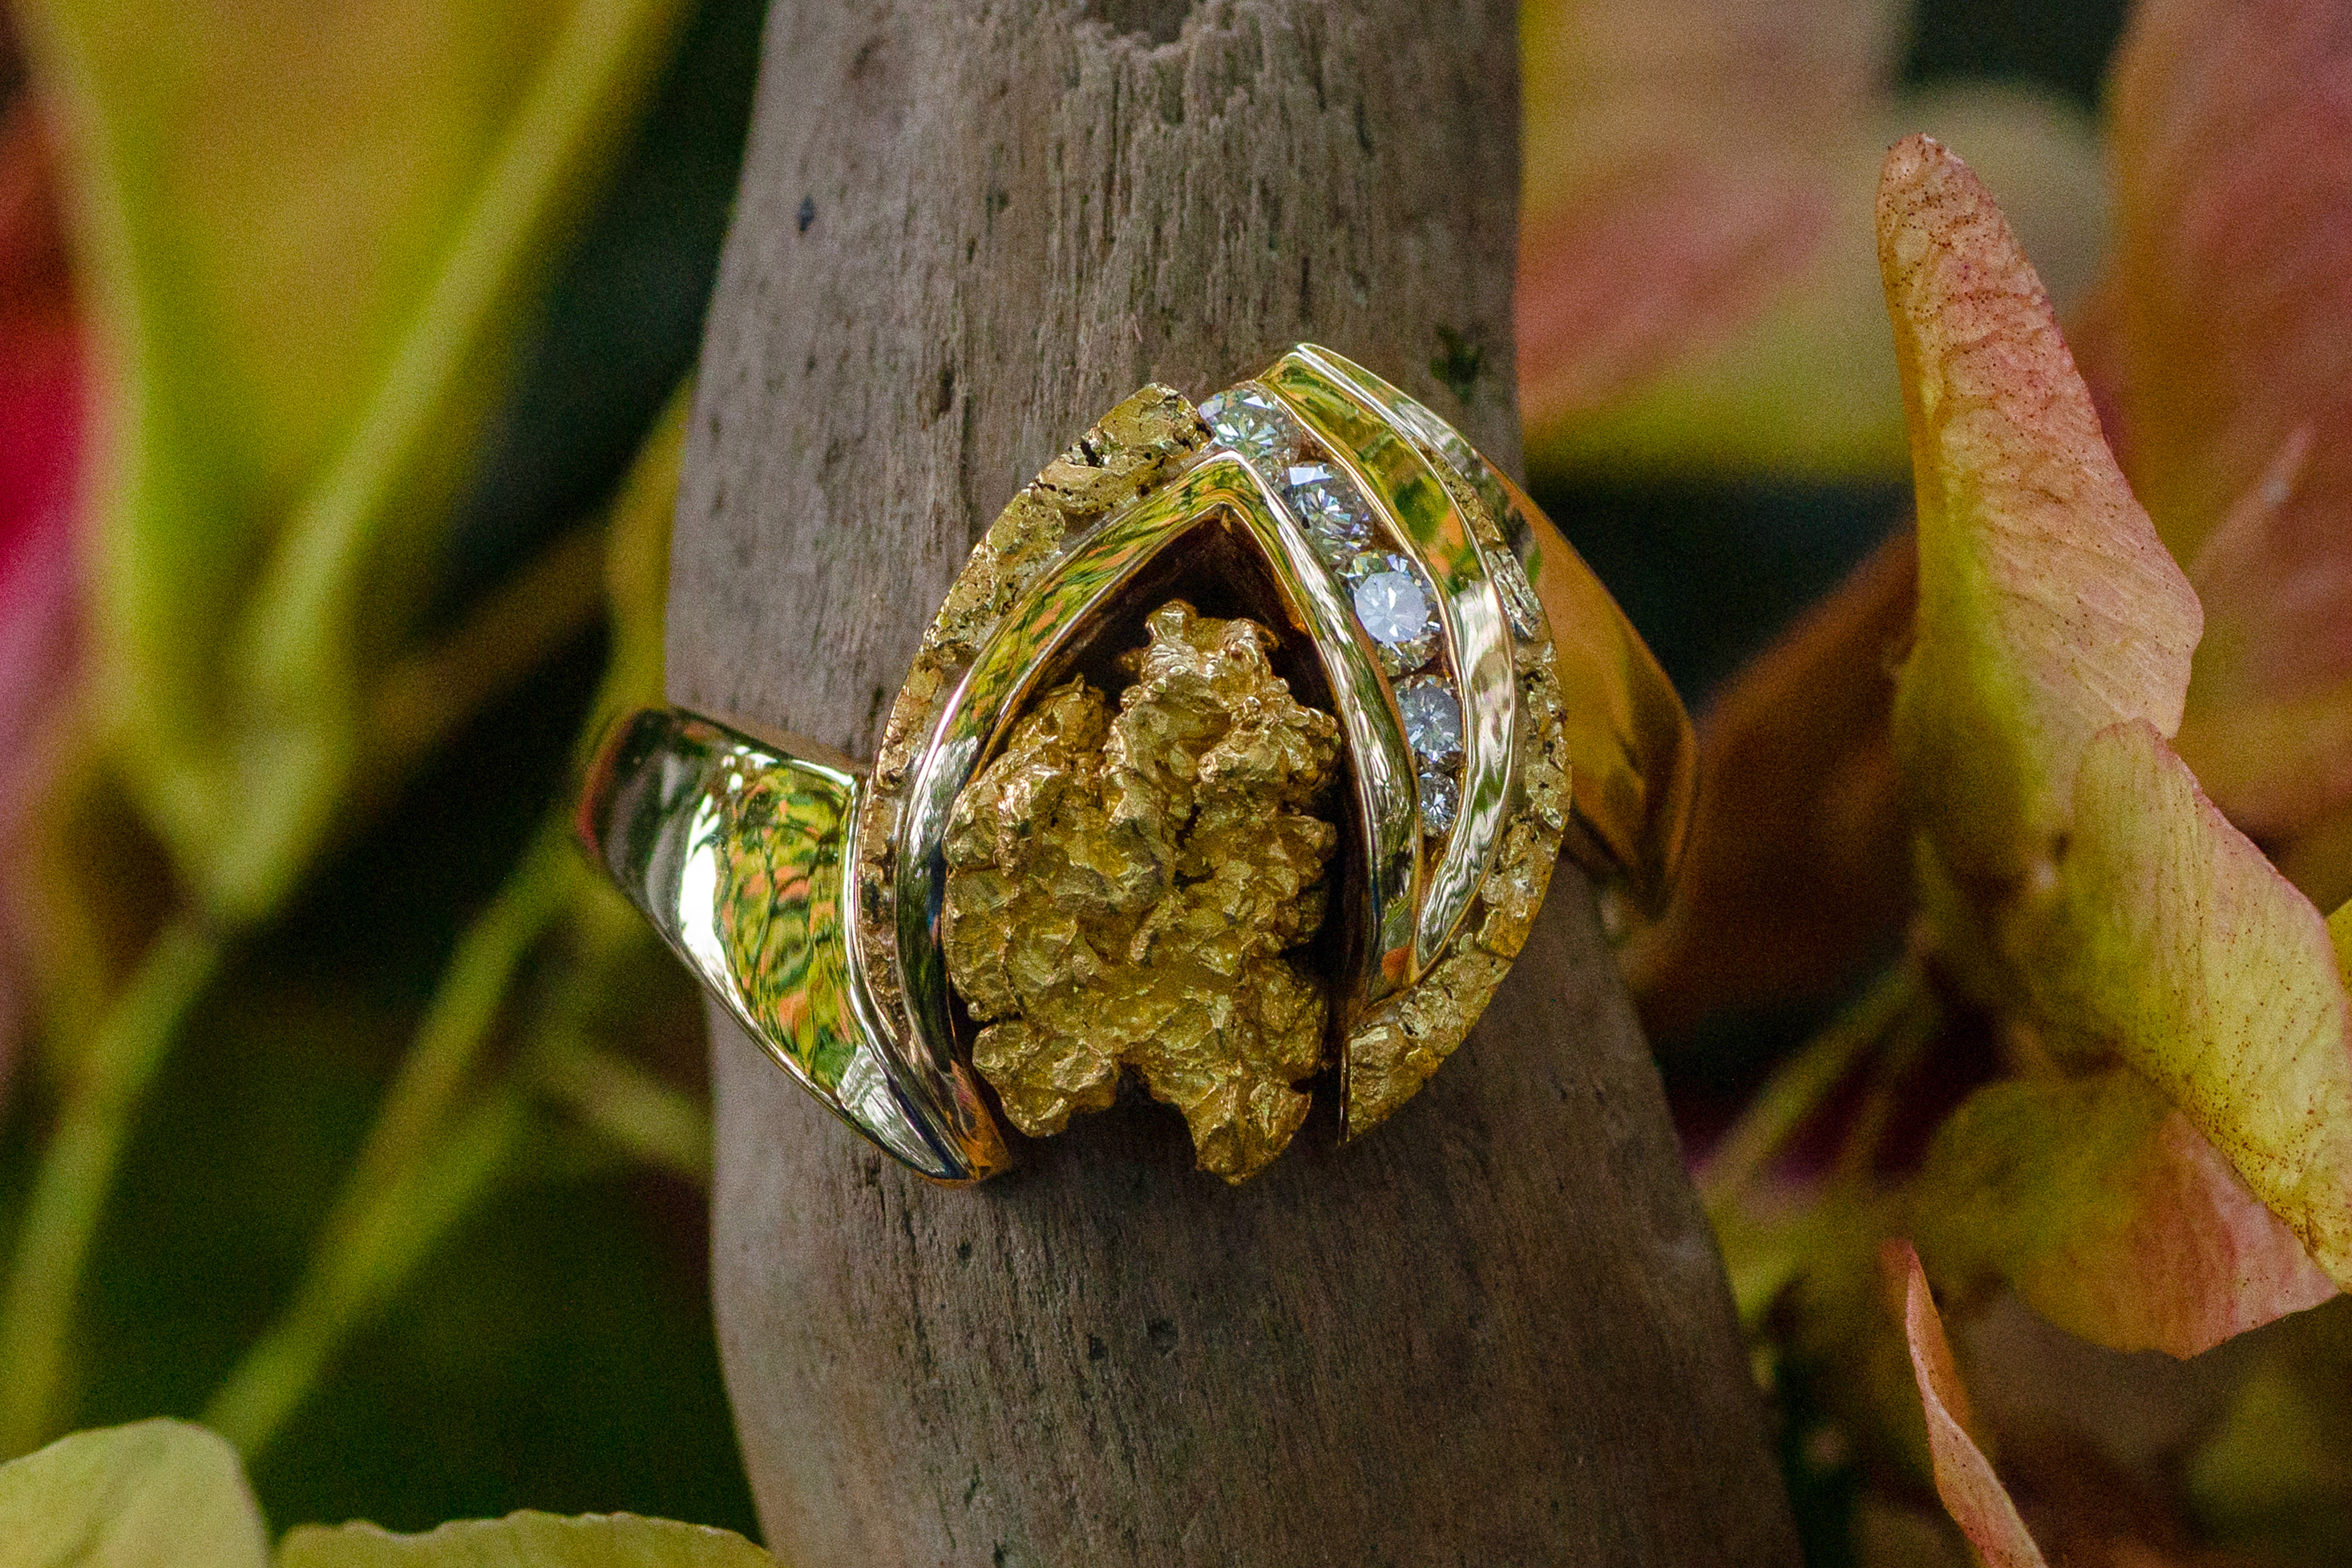 Alaskan Gold Nuggets and Diamonds in Yellow Gold Ring, Gold Nugget Jewelry